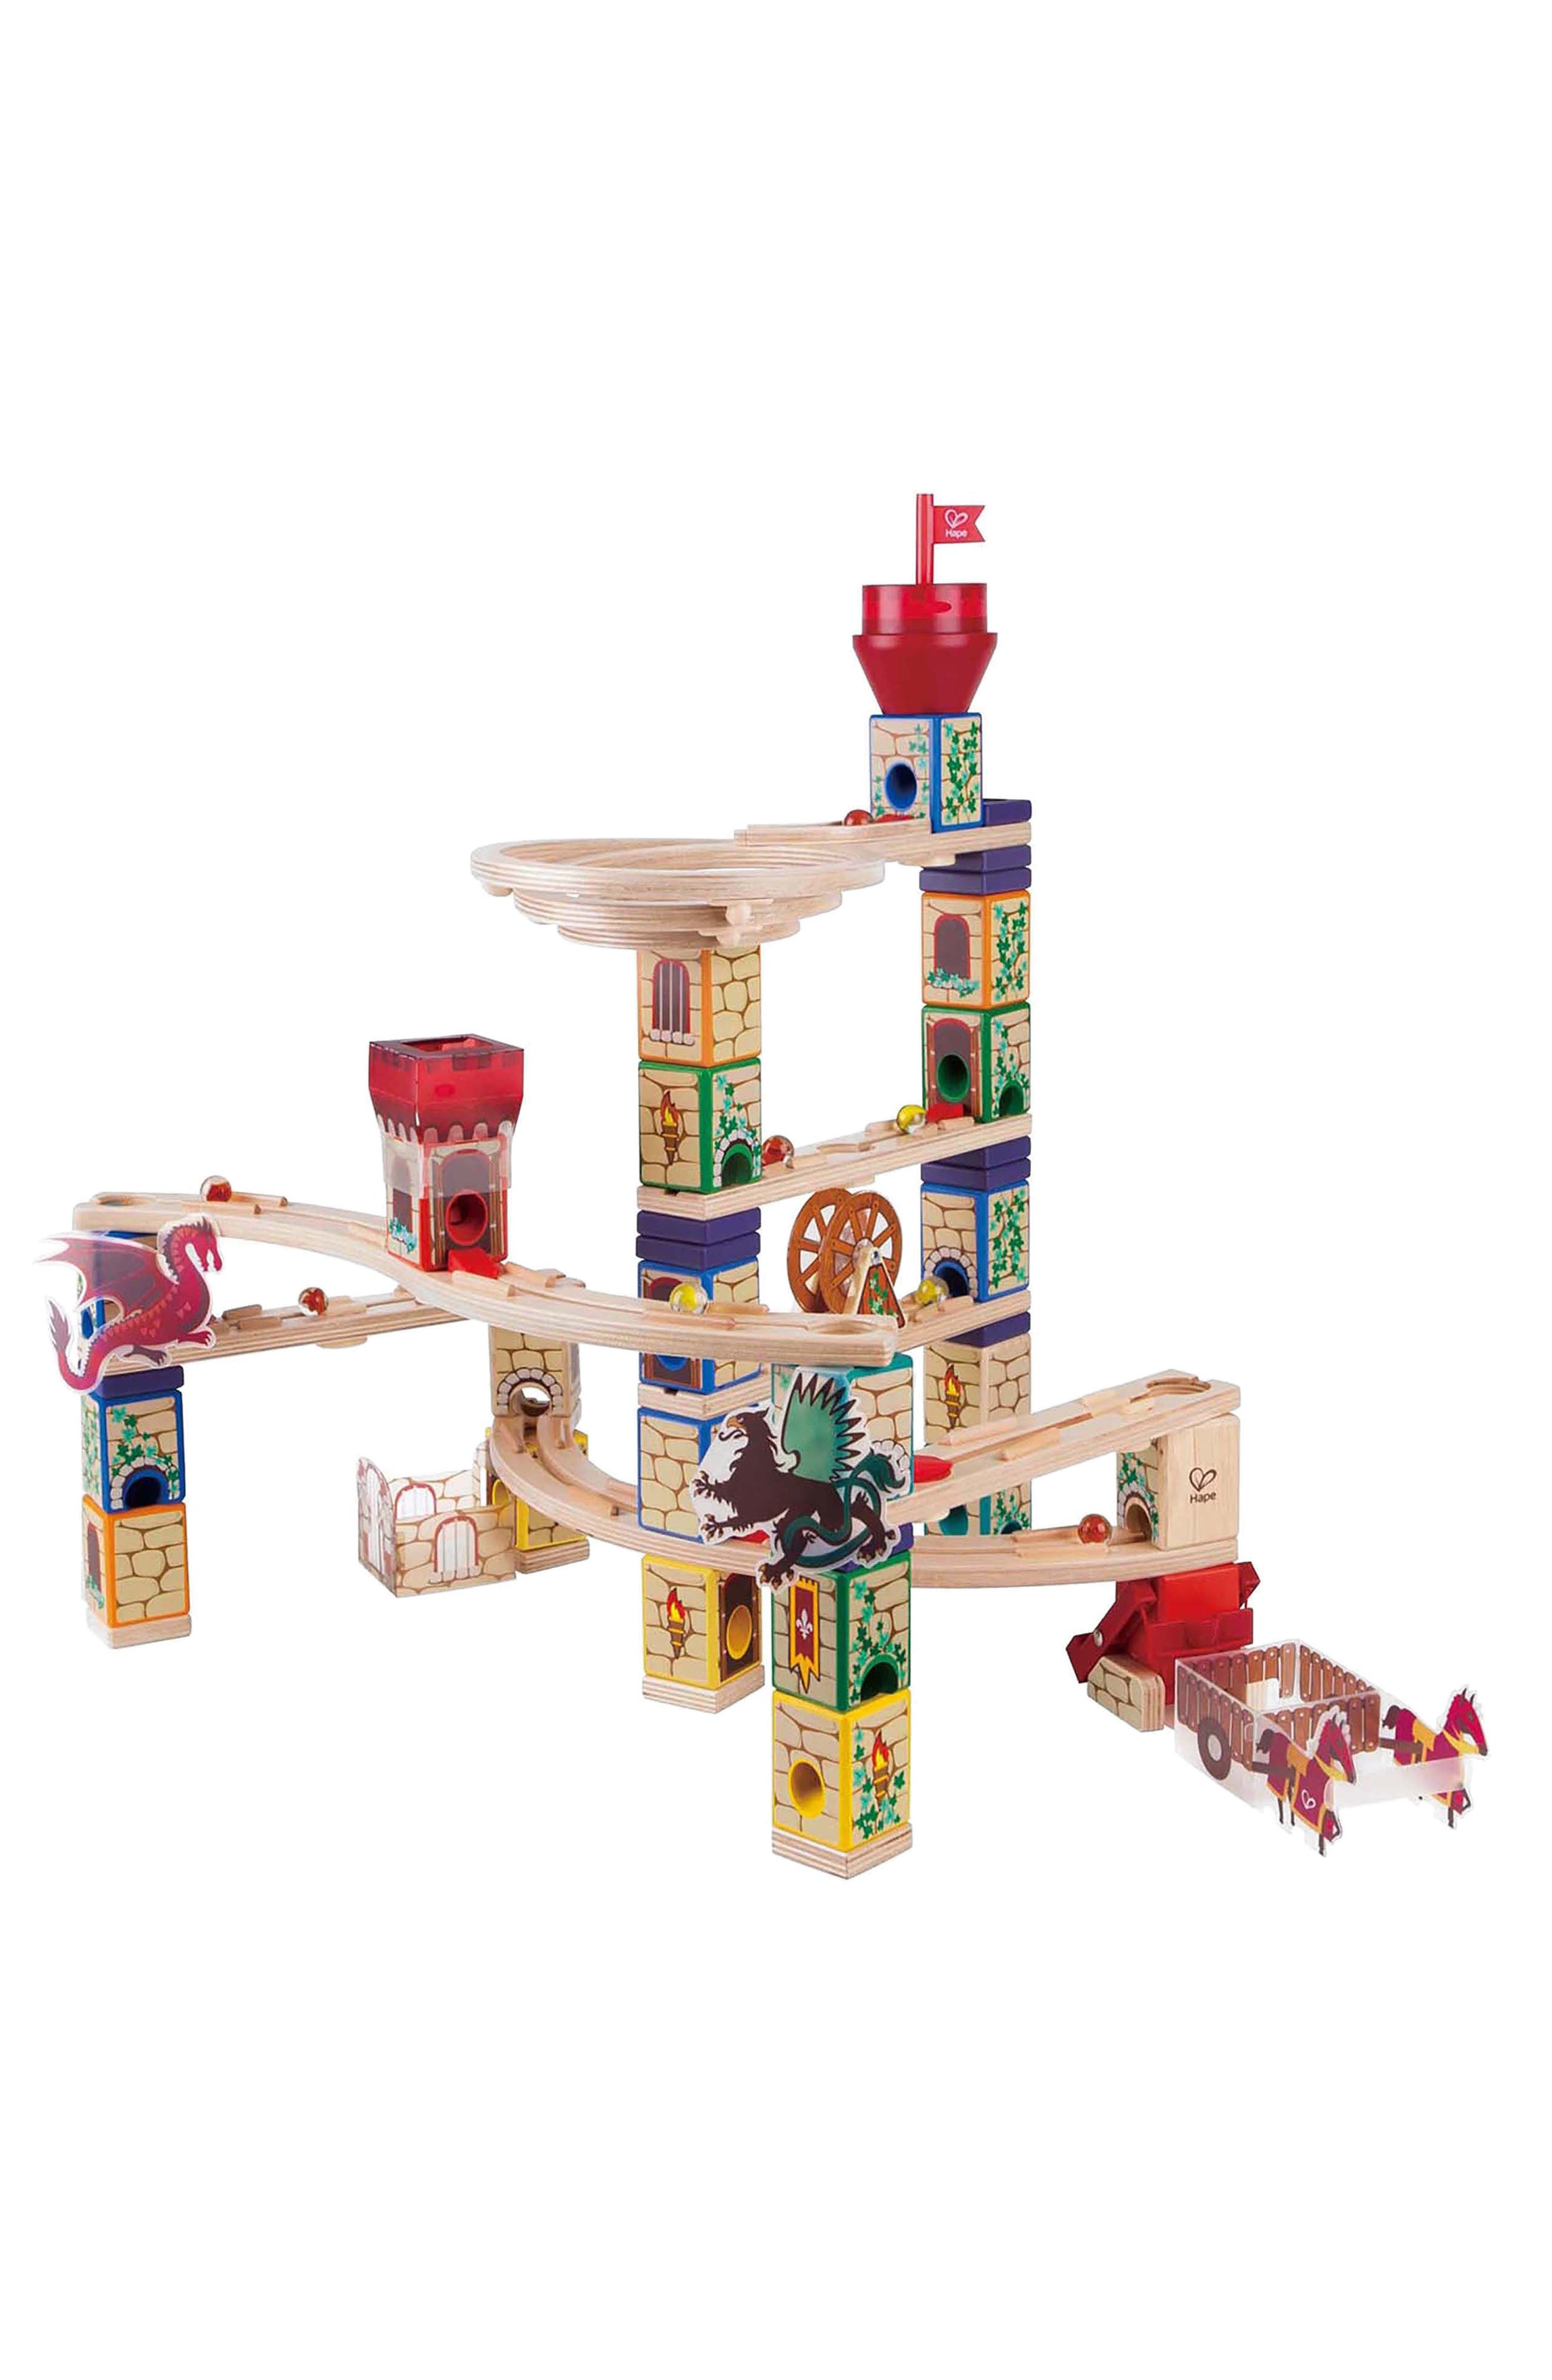 Medieval Quest Quadrilla Marble Run,                             Main thumbnail 1, color,                             600